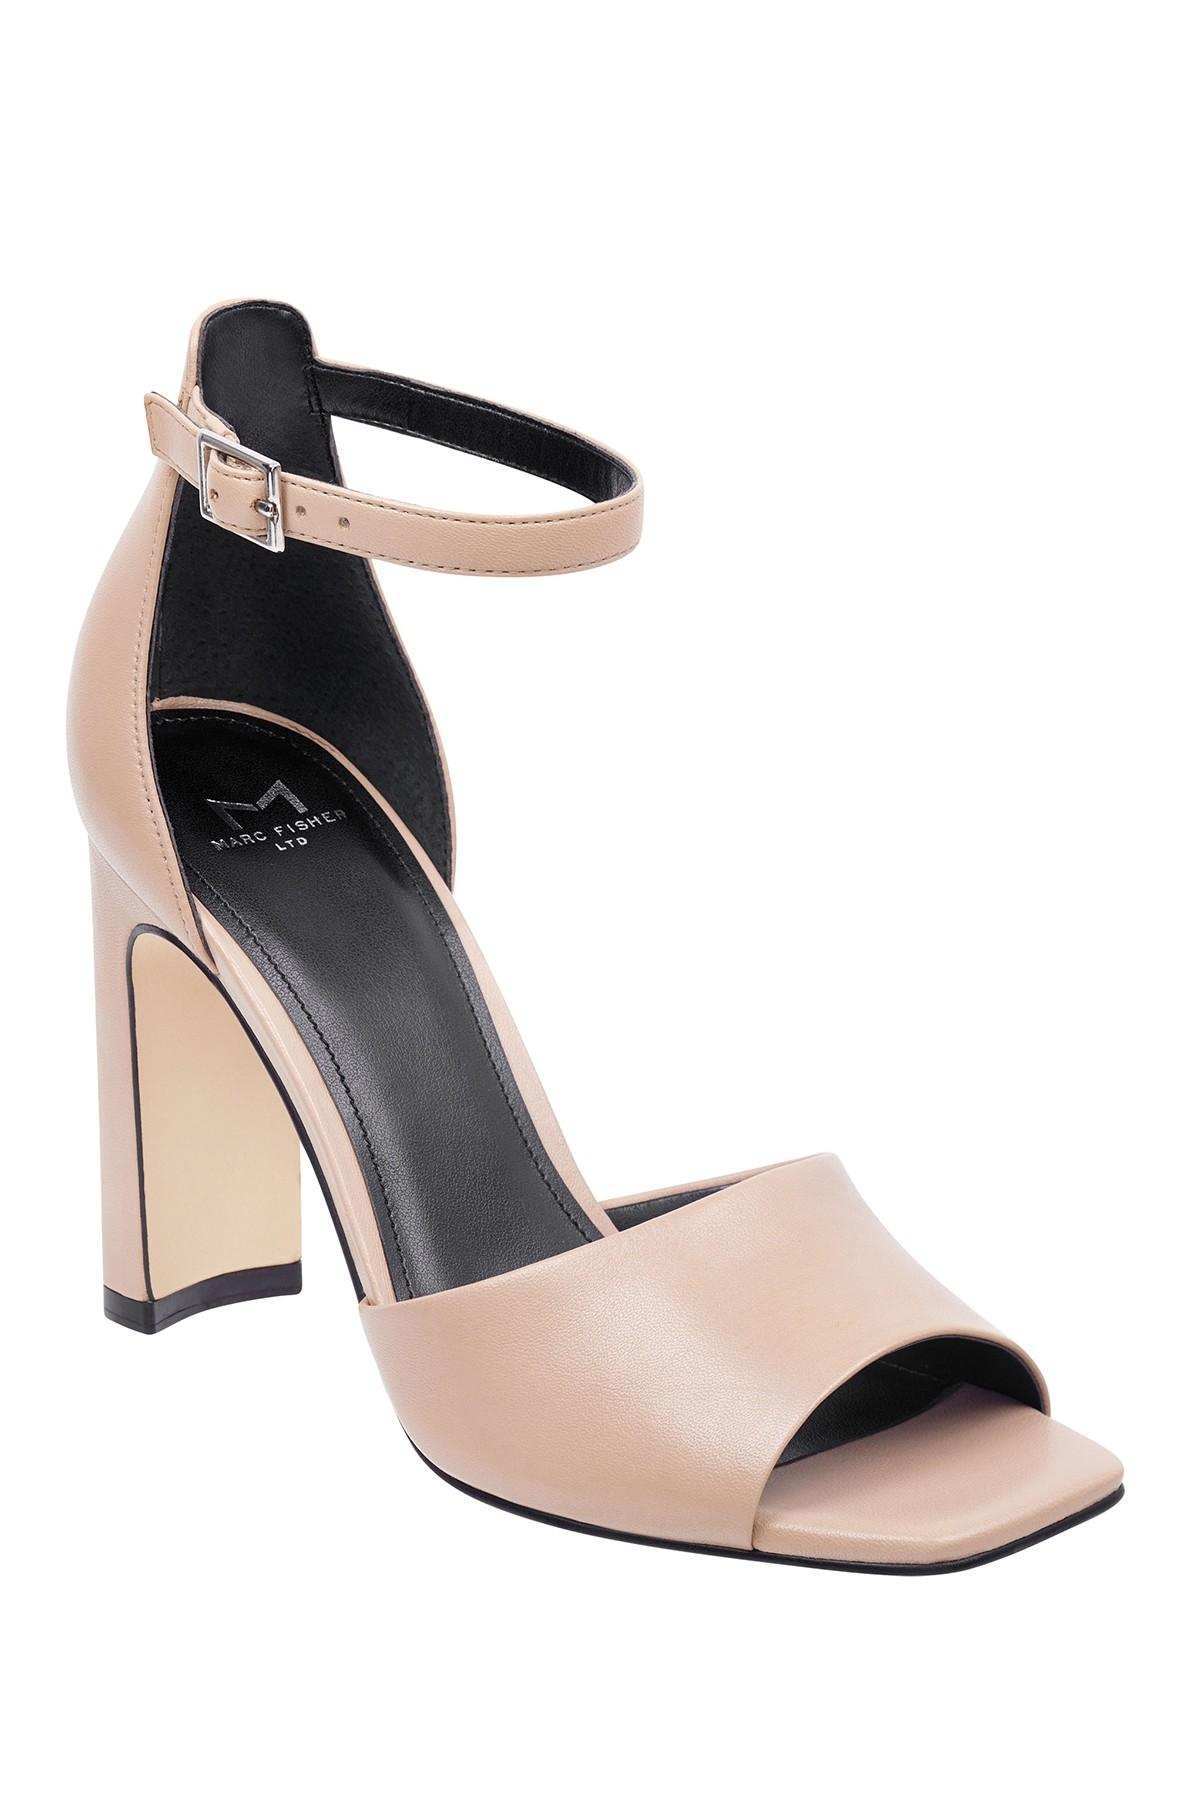 dbdd2a9ac2a Marc Fisher. Harlin Ankle Strap Sandal (women).  199  80 From Nordstrom Rack